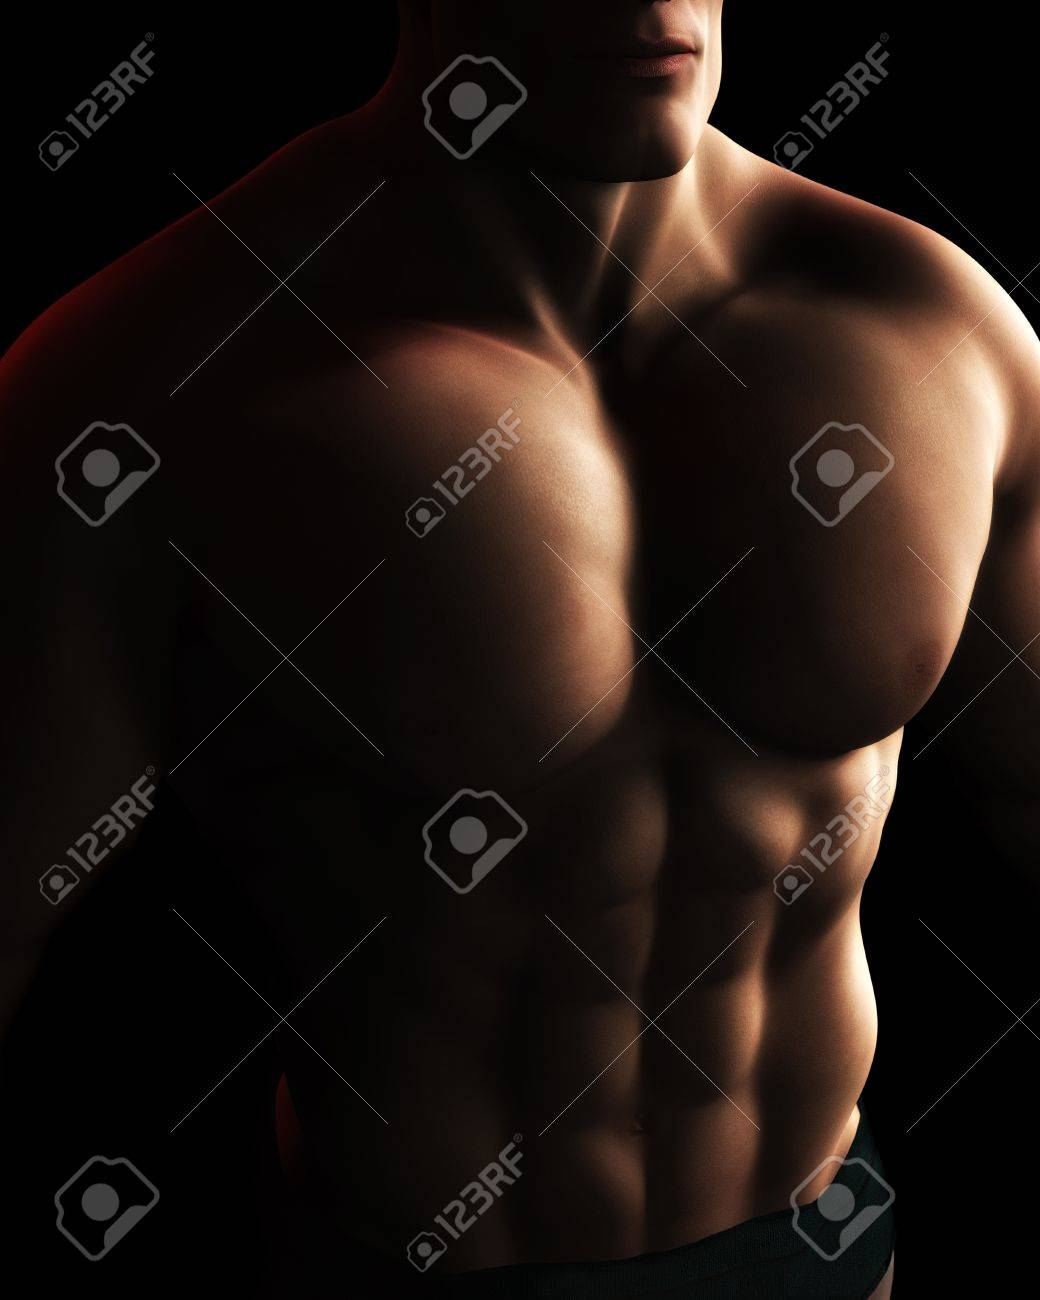 A Digital Illustration of a male bodybuilder's torso in dynamic light and shadow. Stock Illustration - 12474855